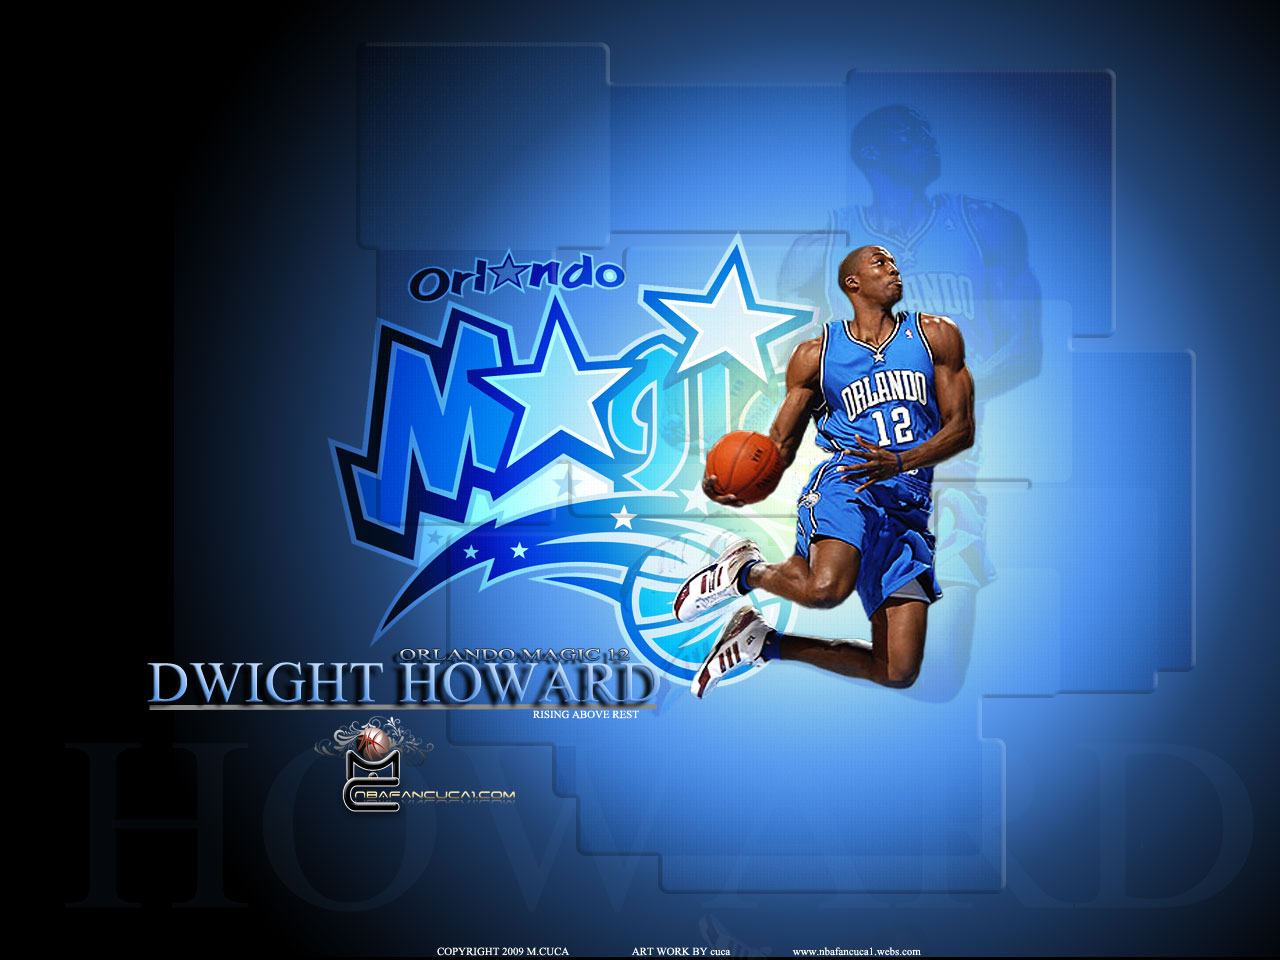 ... /BW4mso7VI_o/s1600/Dwight-Howard-Orlando-Magic-Wallpaper.jpg